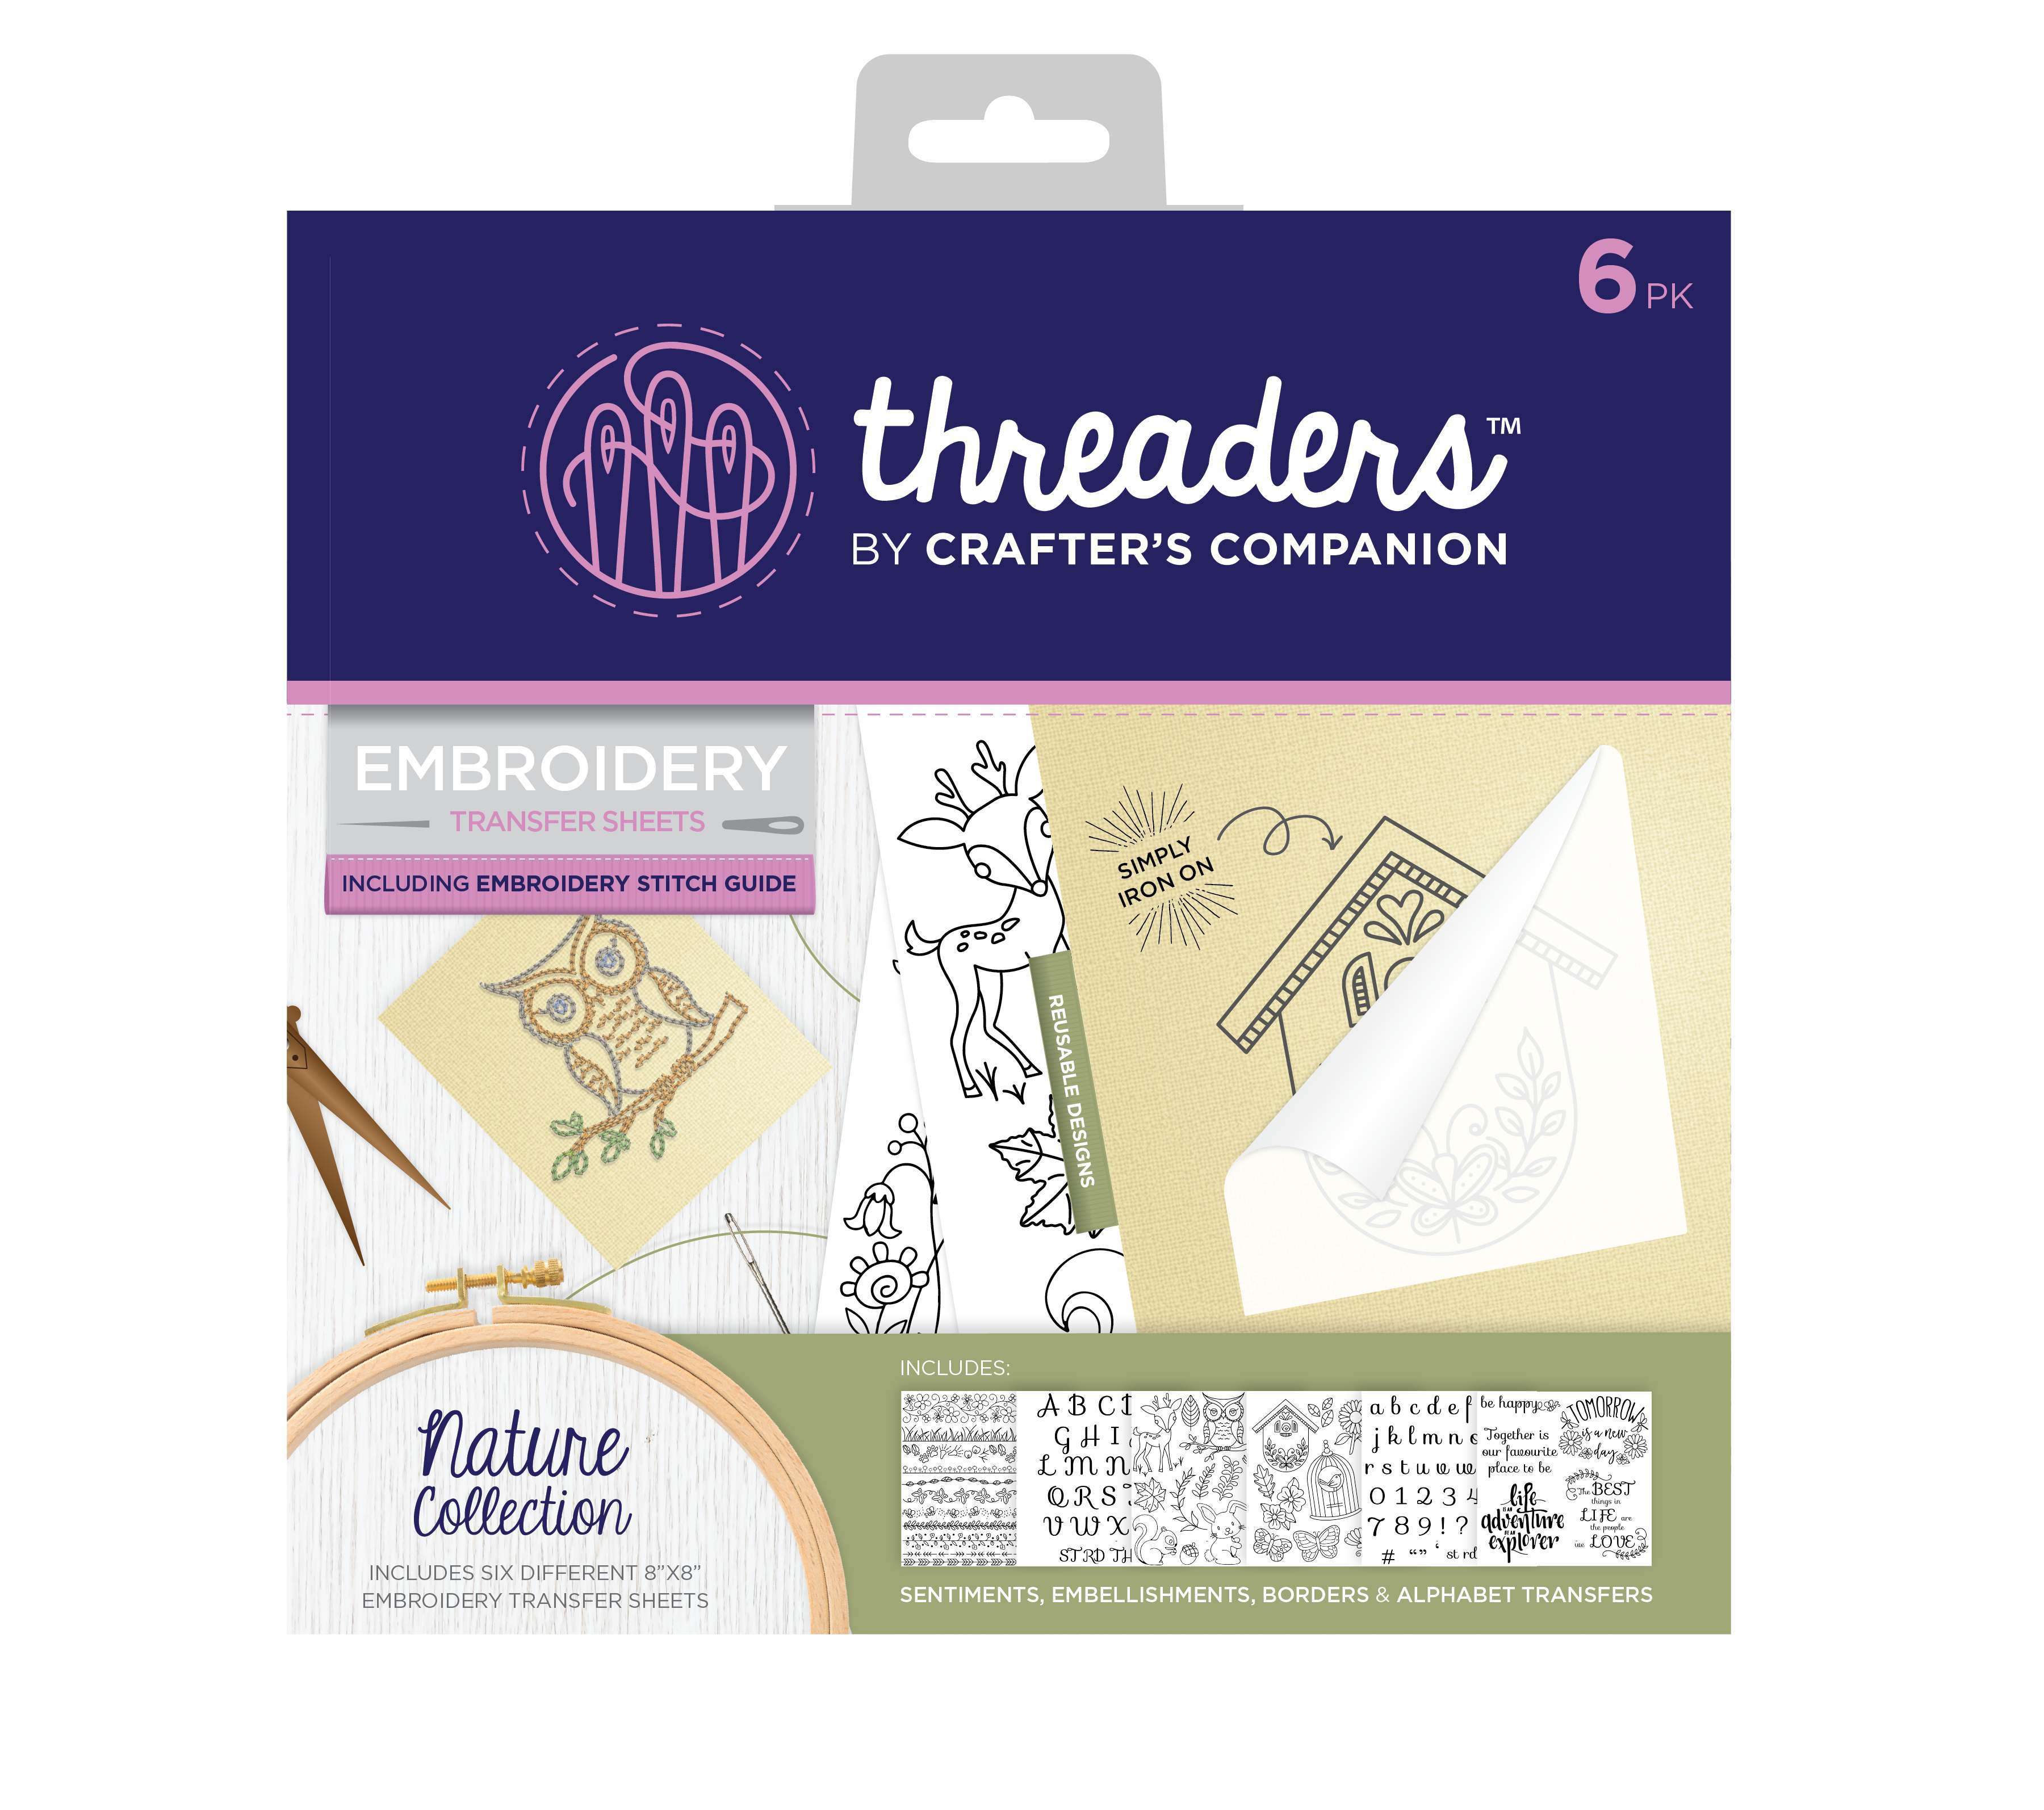 20% off Embroidery Kits, Transfers and Hoooked